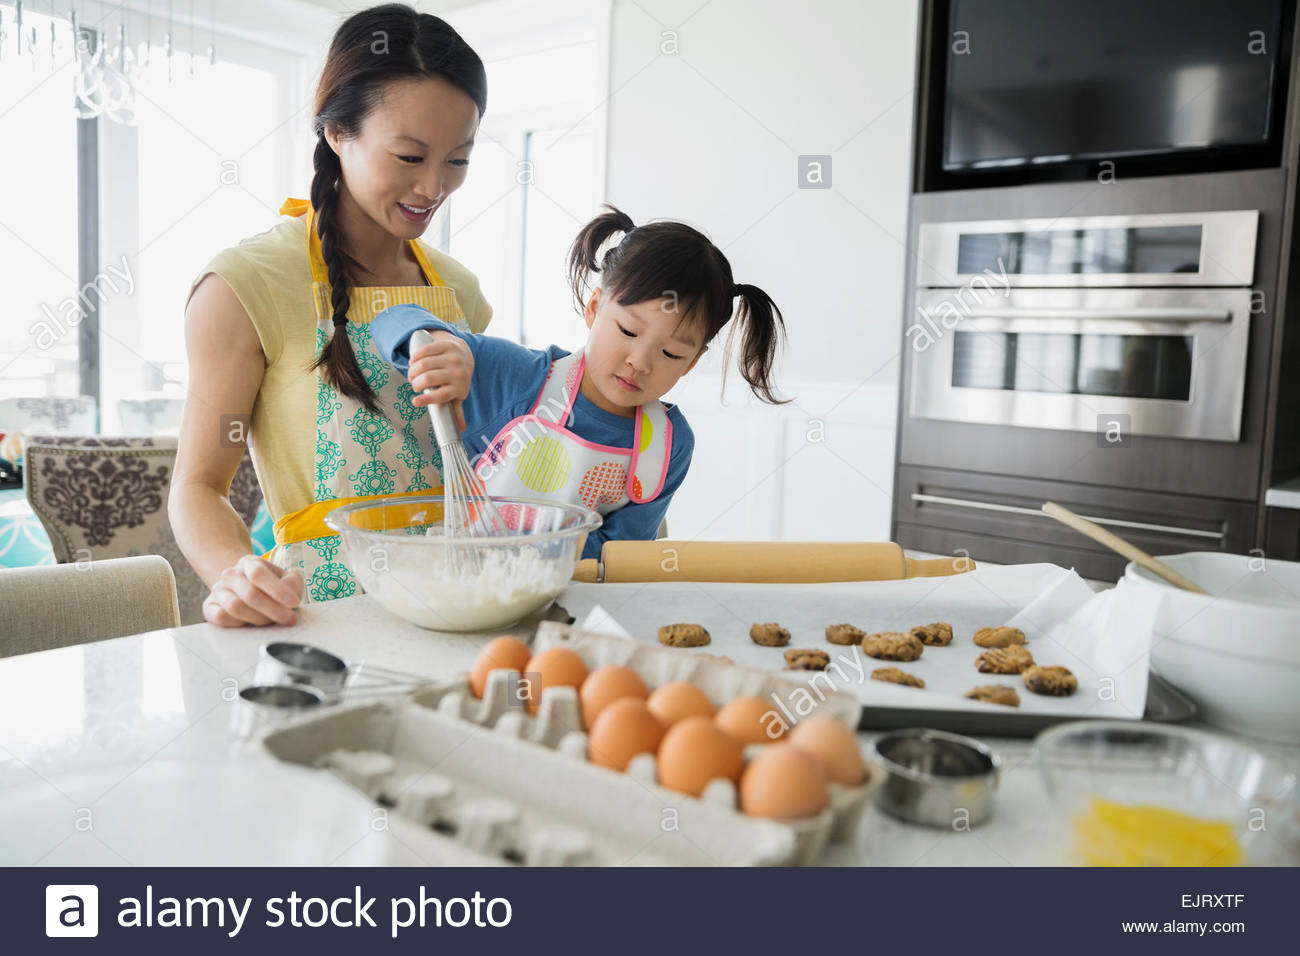 Mother and daughter baking cookies in kitchen - Stock Image